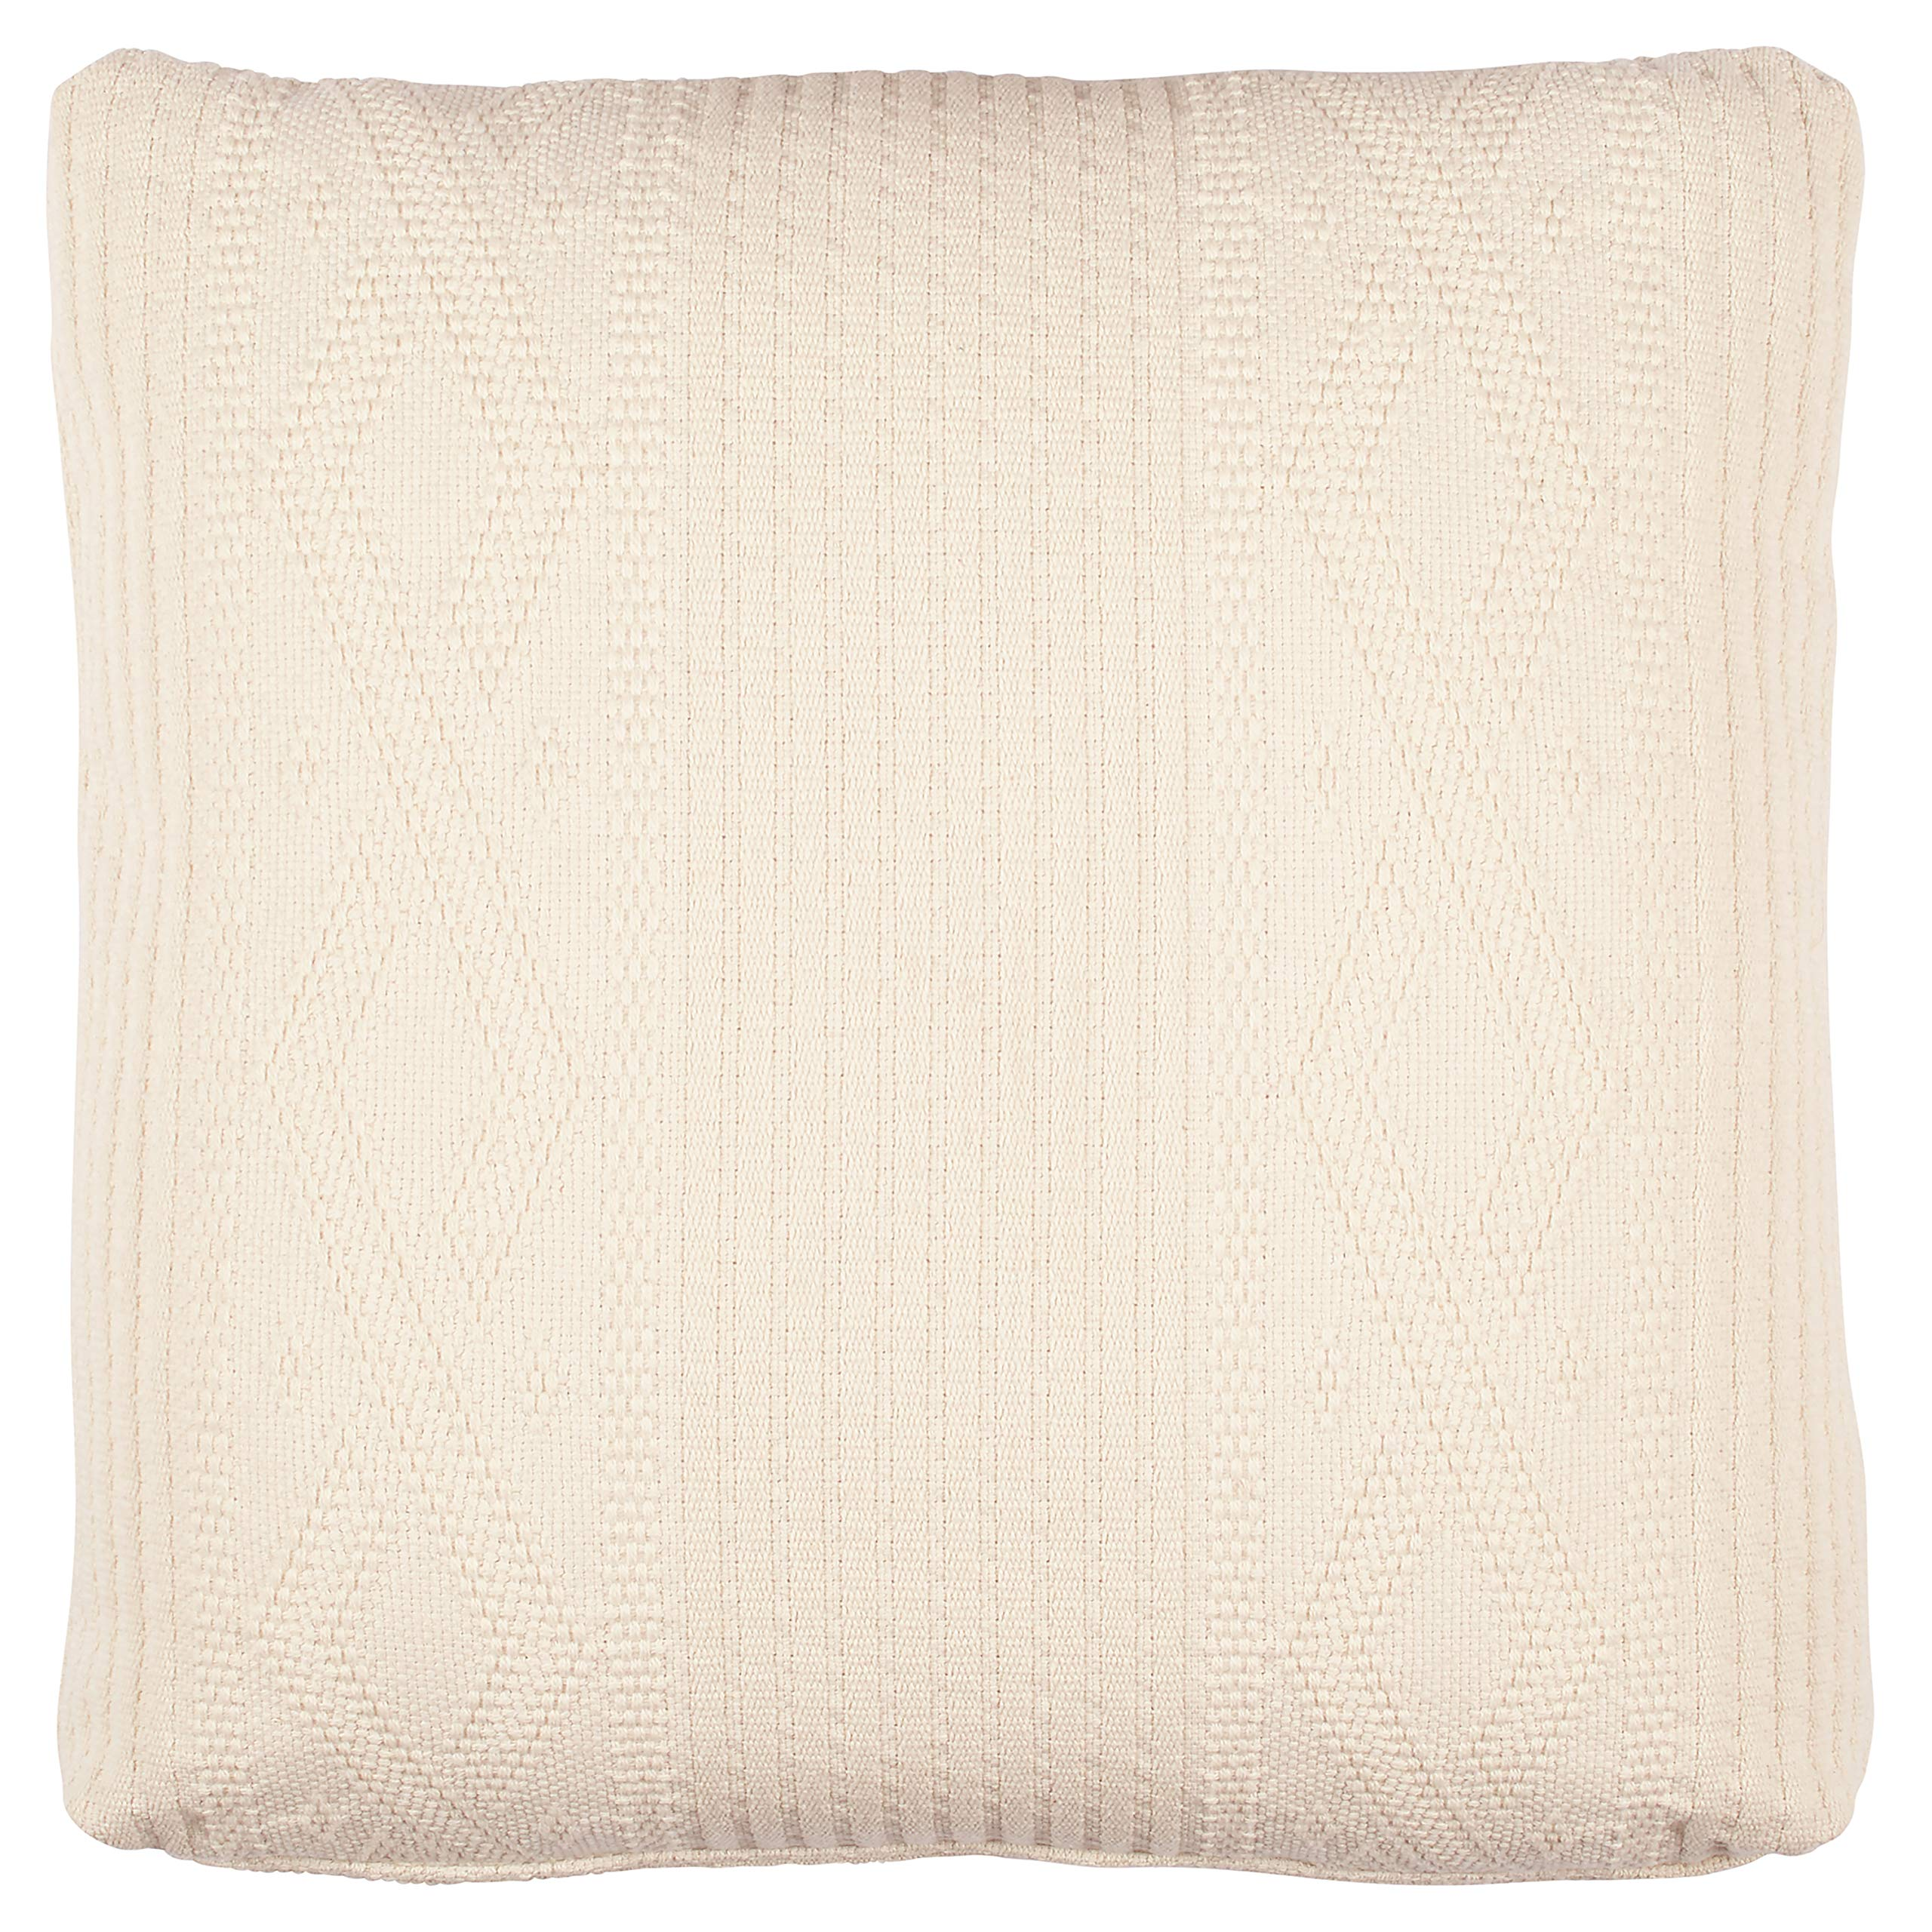 Stone & Beam Transitional Plush Knit Pillow, 19'', Ivory by Stone & Beam